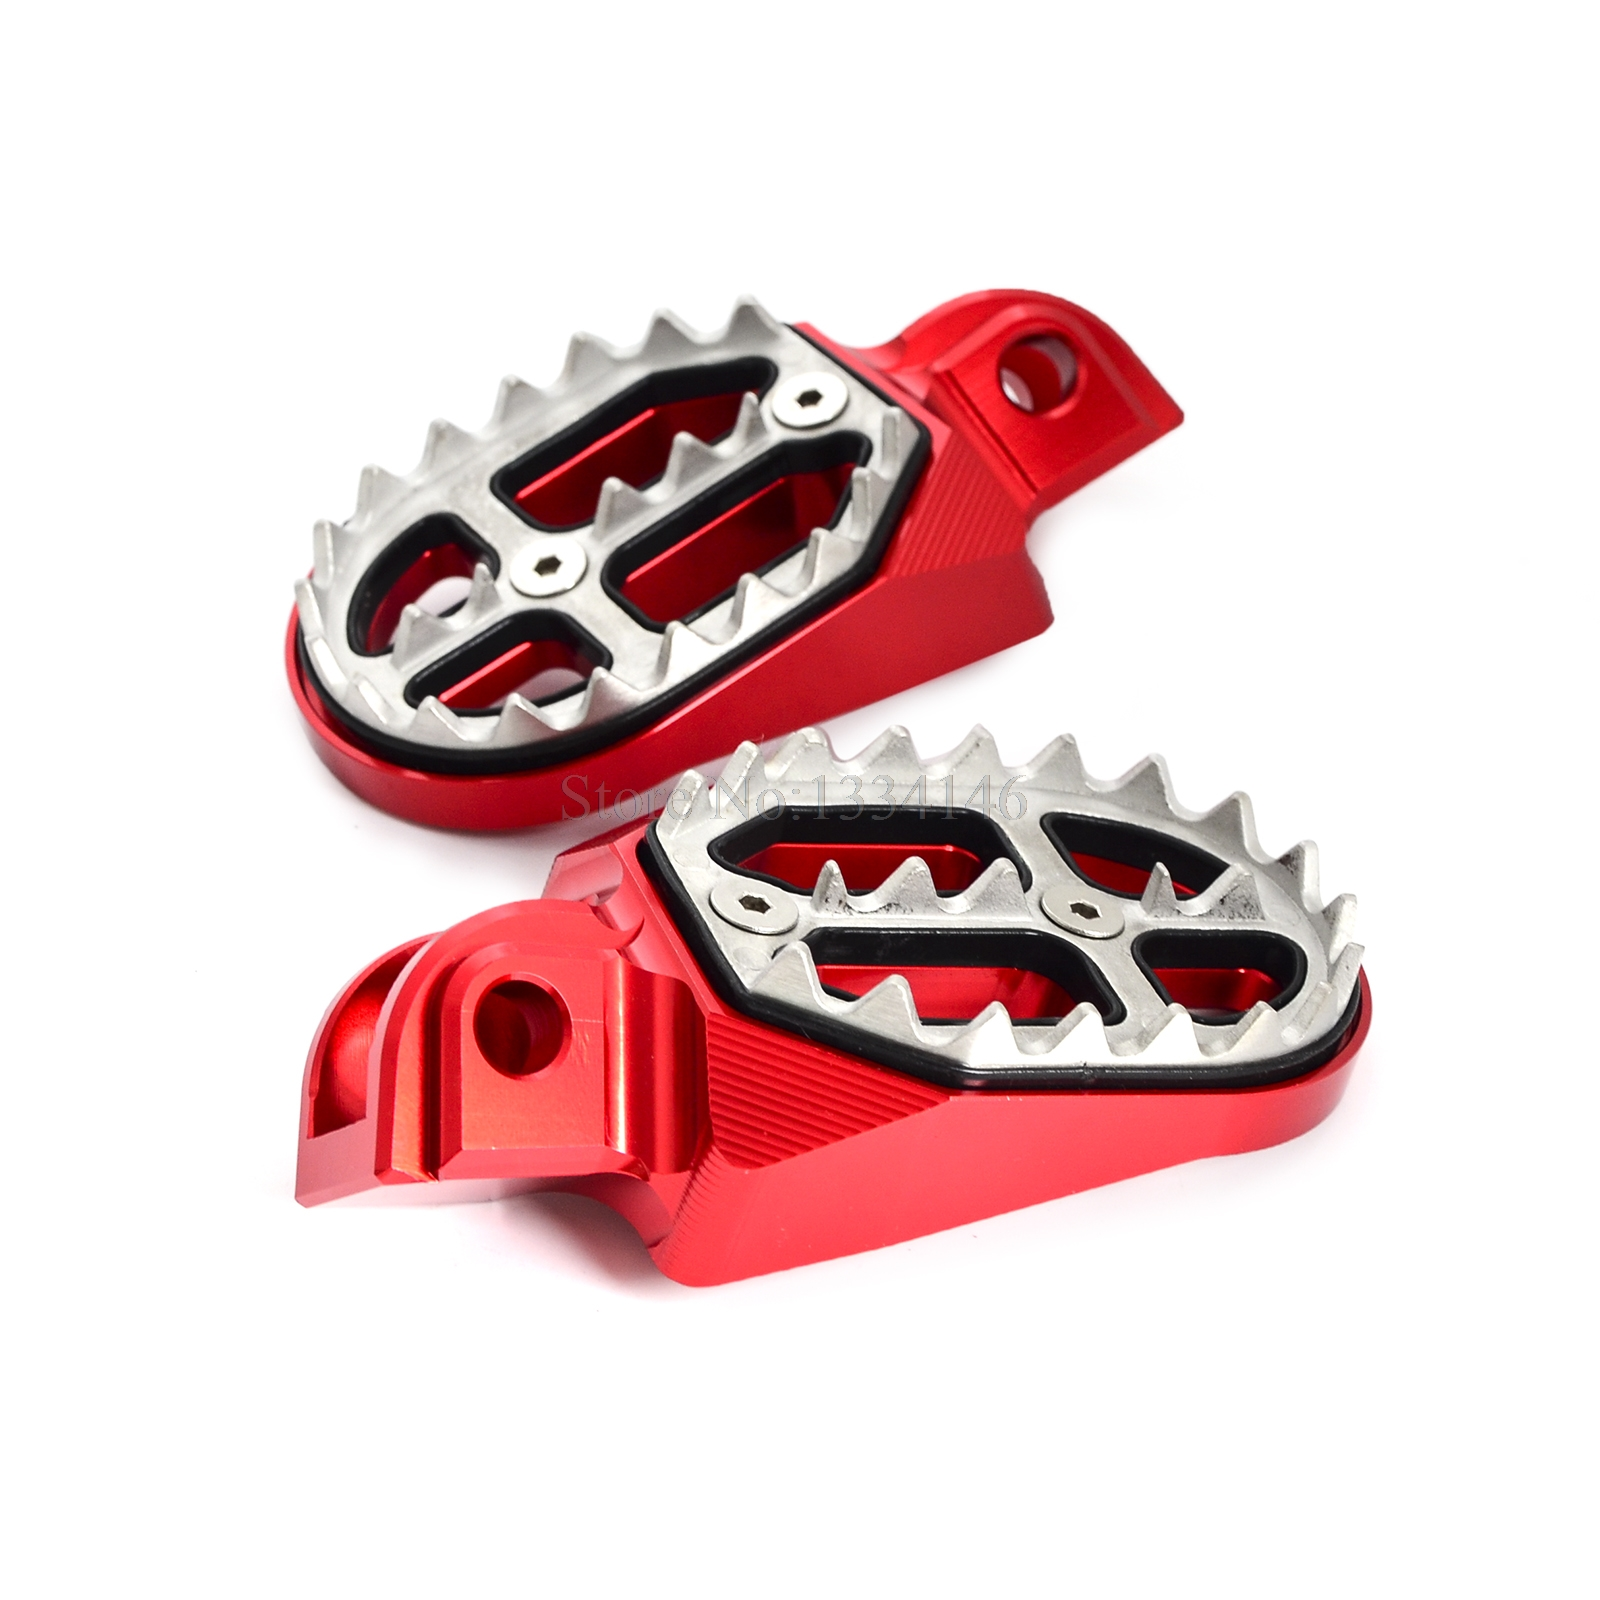 NICECNC Billet MX Foot Pegs Rests Pedals For <font><b>Beta</b></font> 125RR 250RR <font><b>300RR</b></font> 2T 350RR 390RR 400RR 450RR 480RR 498RR 520RR 4T 06-2017 2018 image